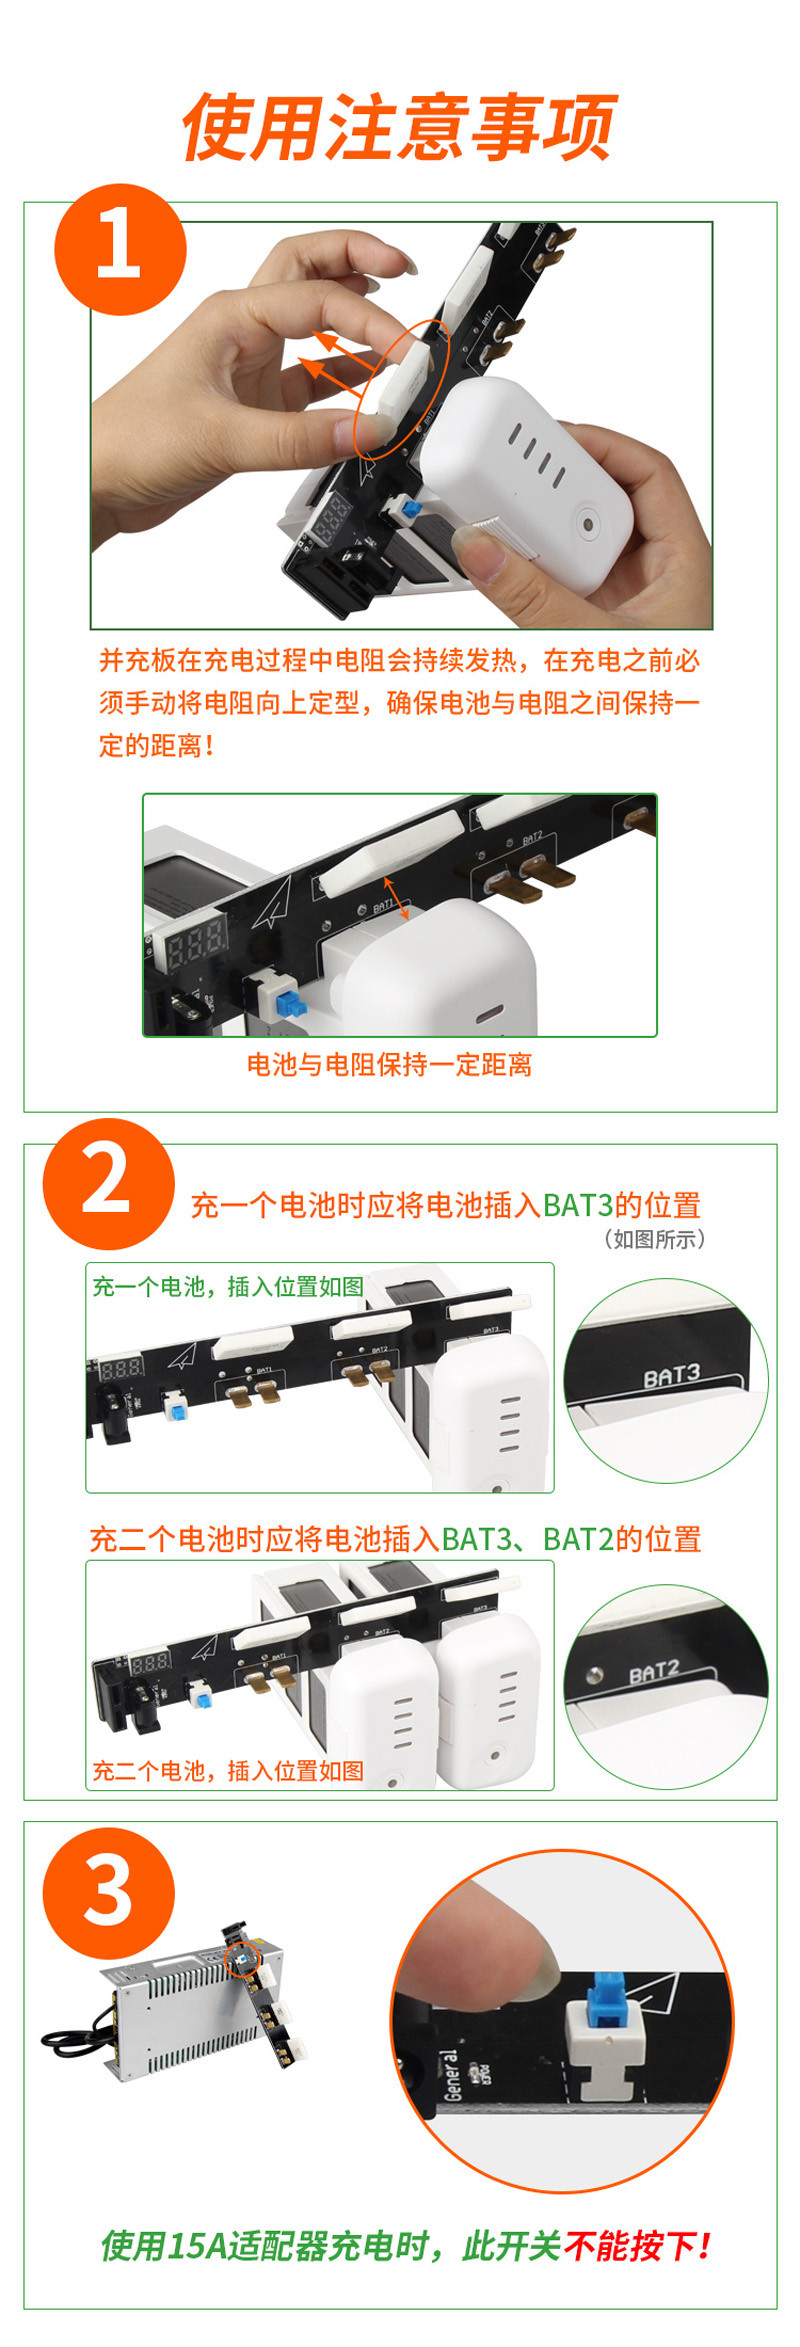 UAV Accessories Multi-function Charge Board Multi-functional Charging Treasure 3 Sockets for DJI Phantom 3